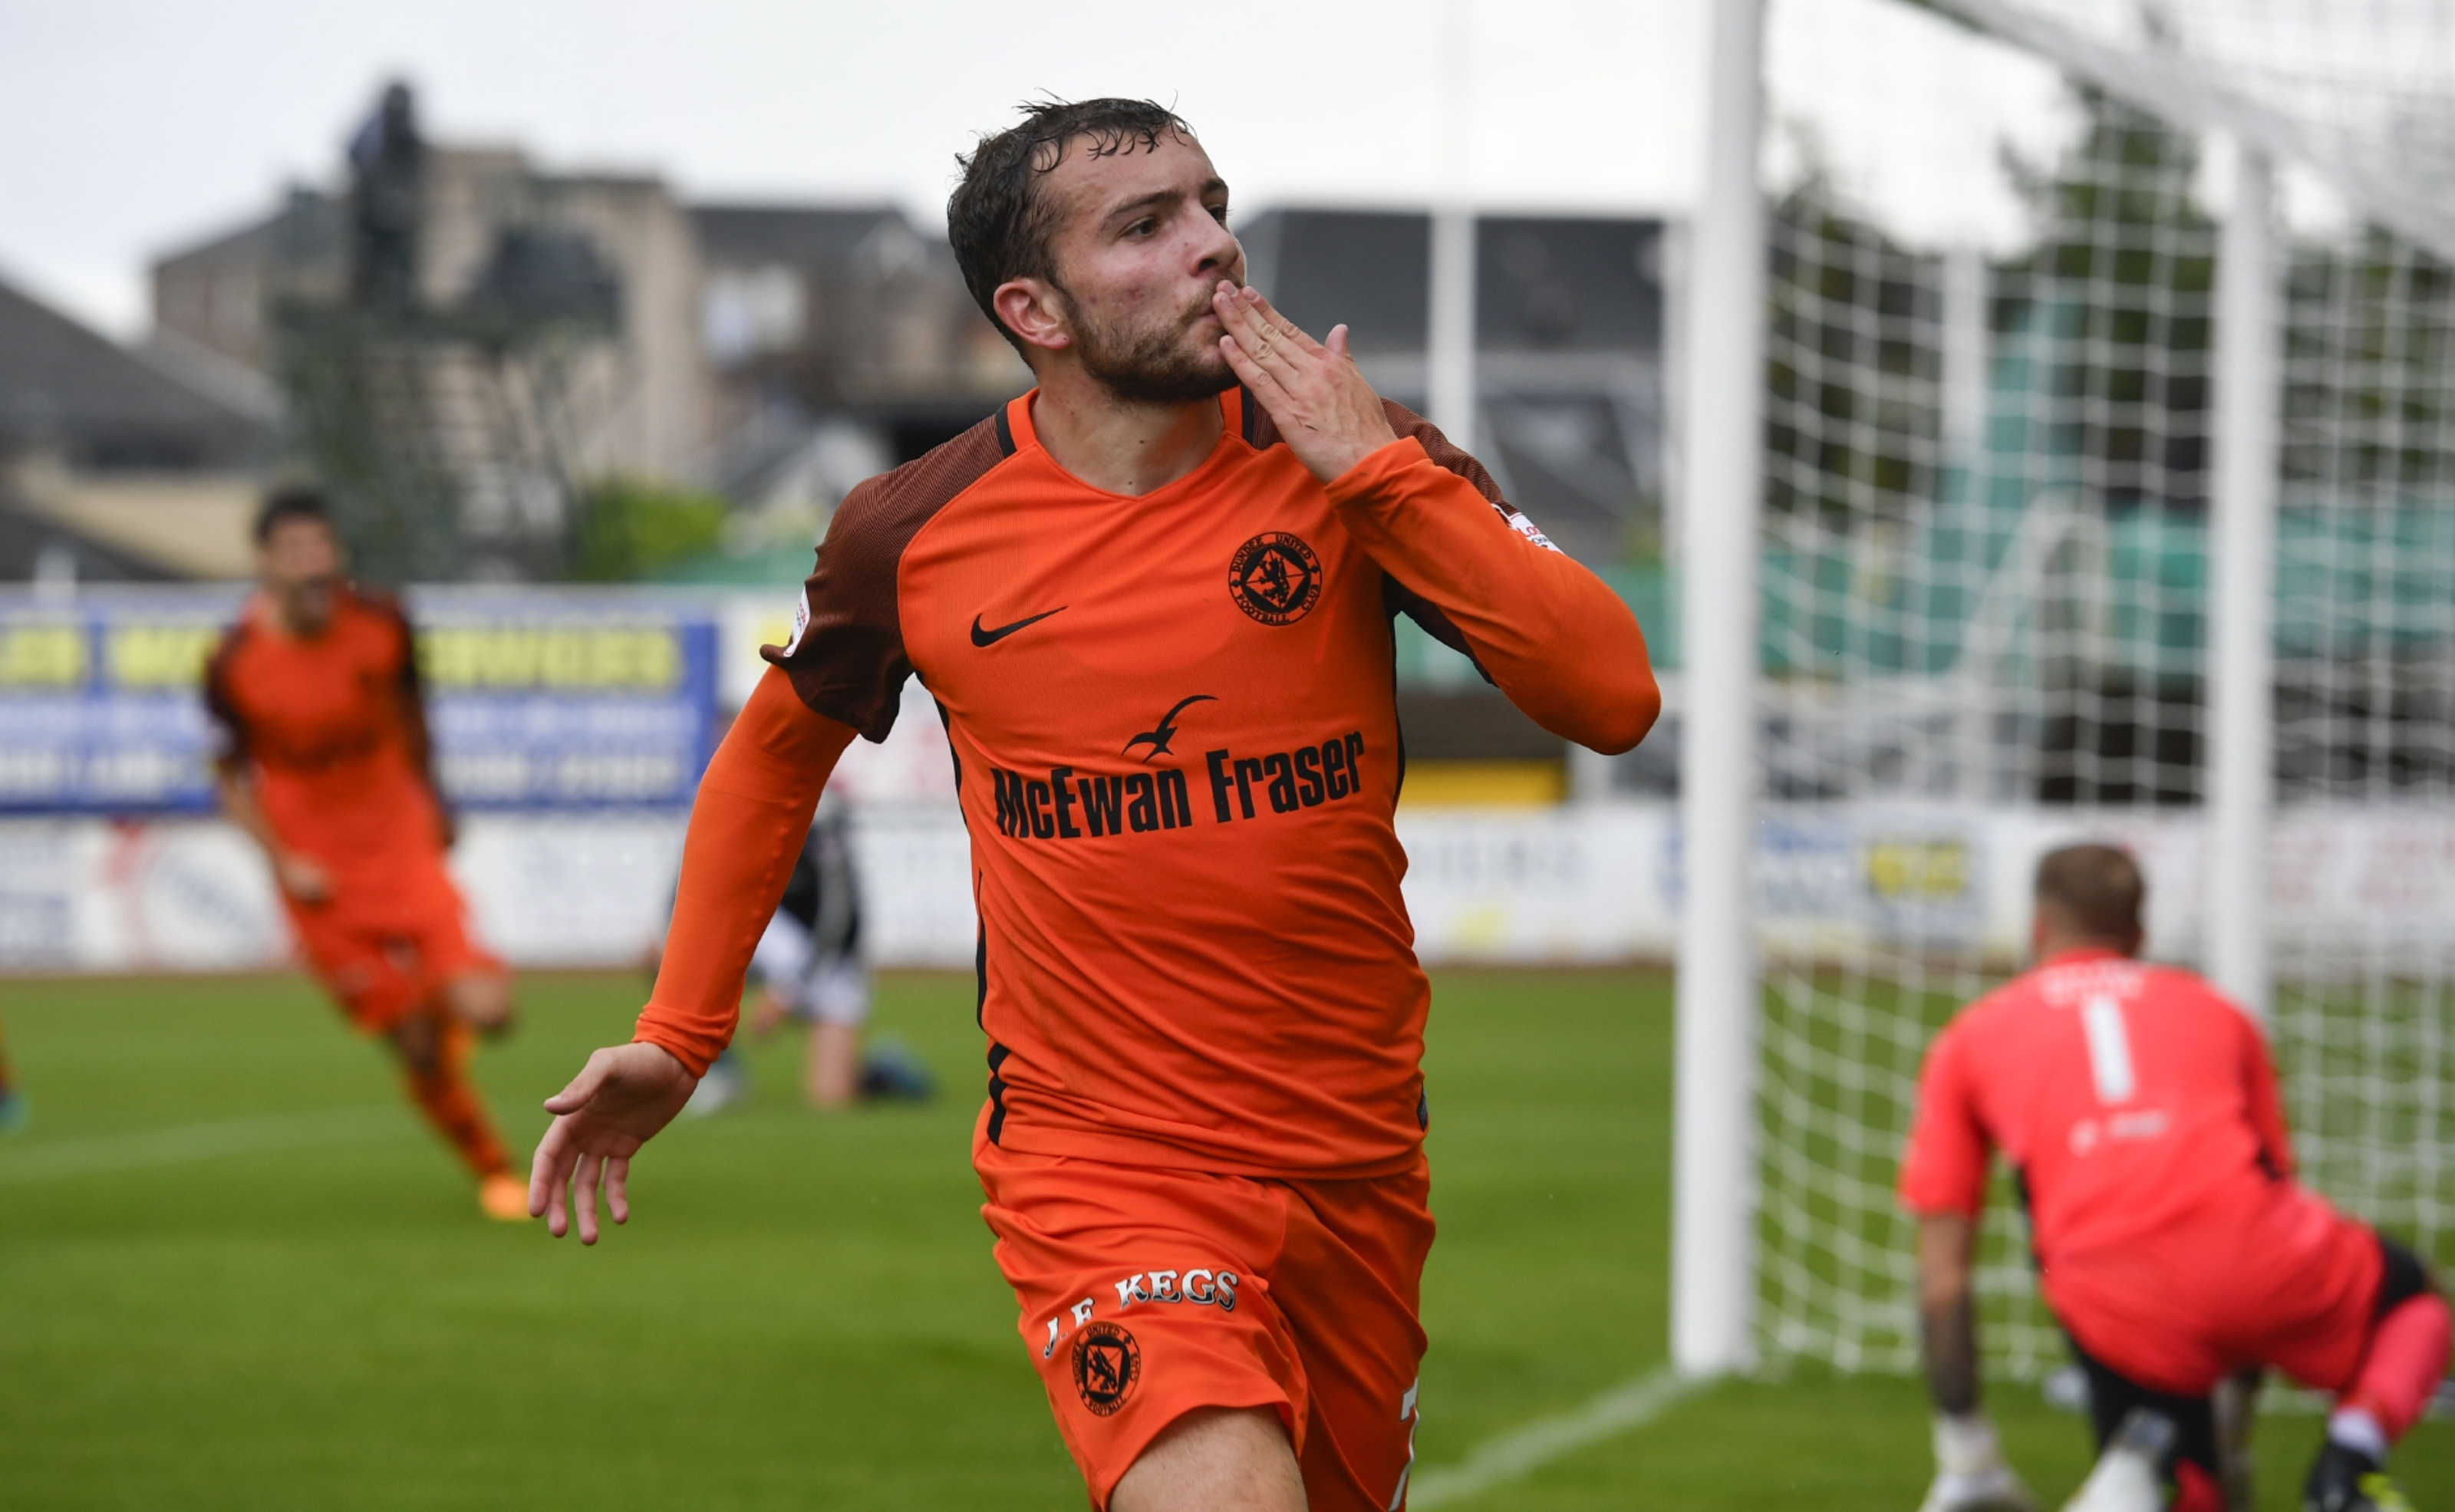 Paul McMullan celebrates his goal against Dundee.